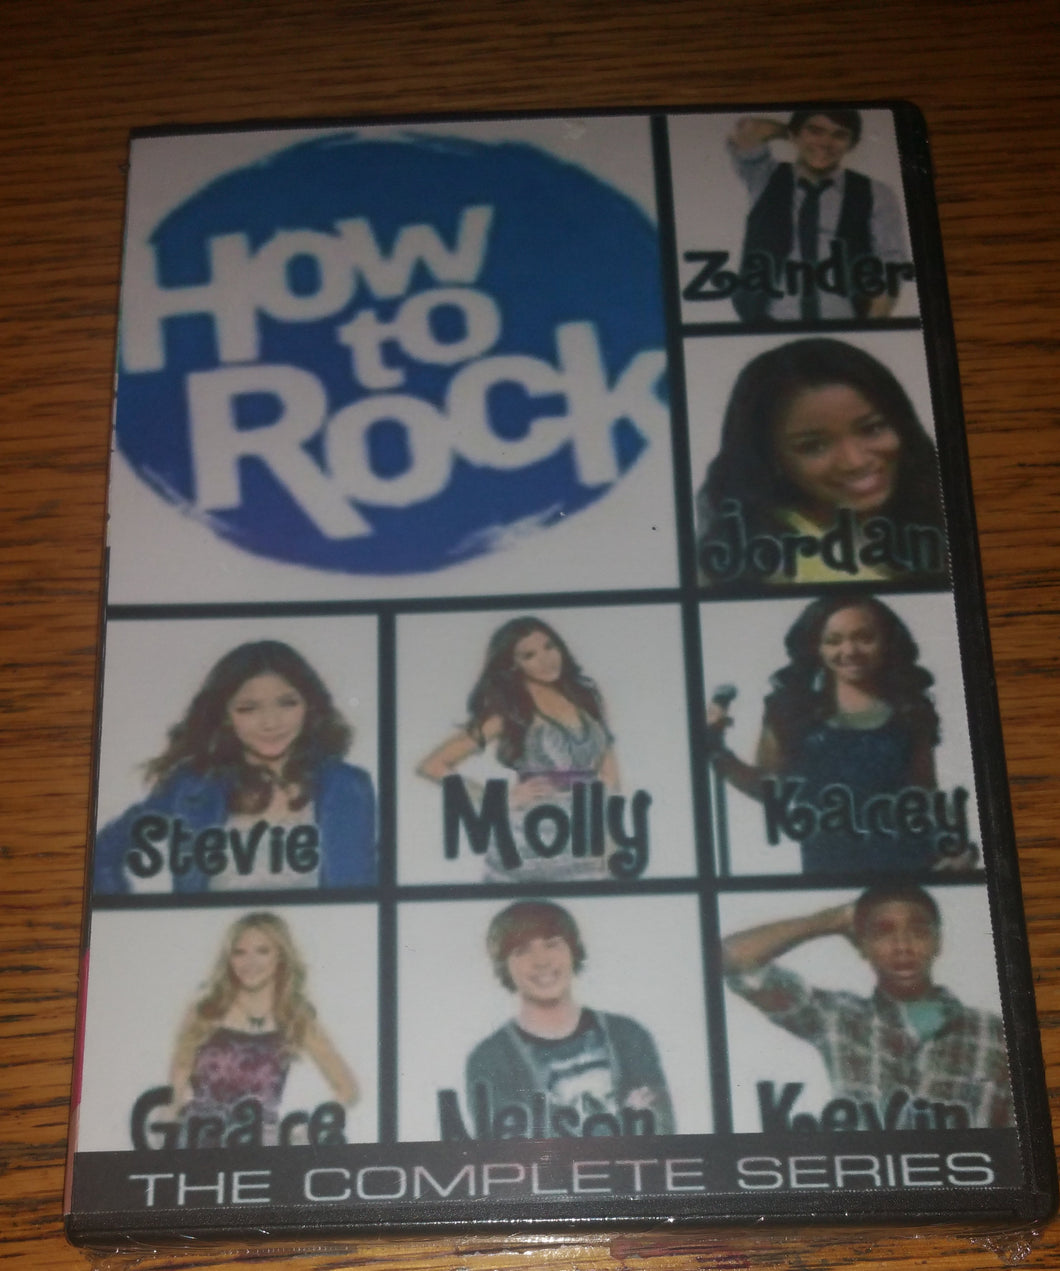 How to Rock 2012 THE COMPLETE SERIES ON 2 DVD'S Cymphonique Miller